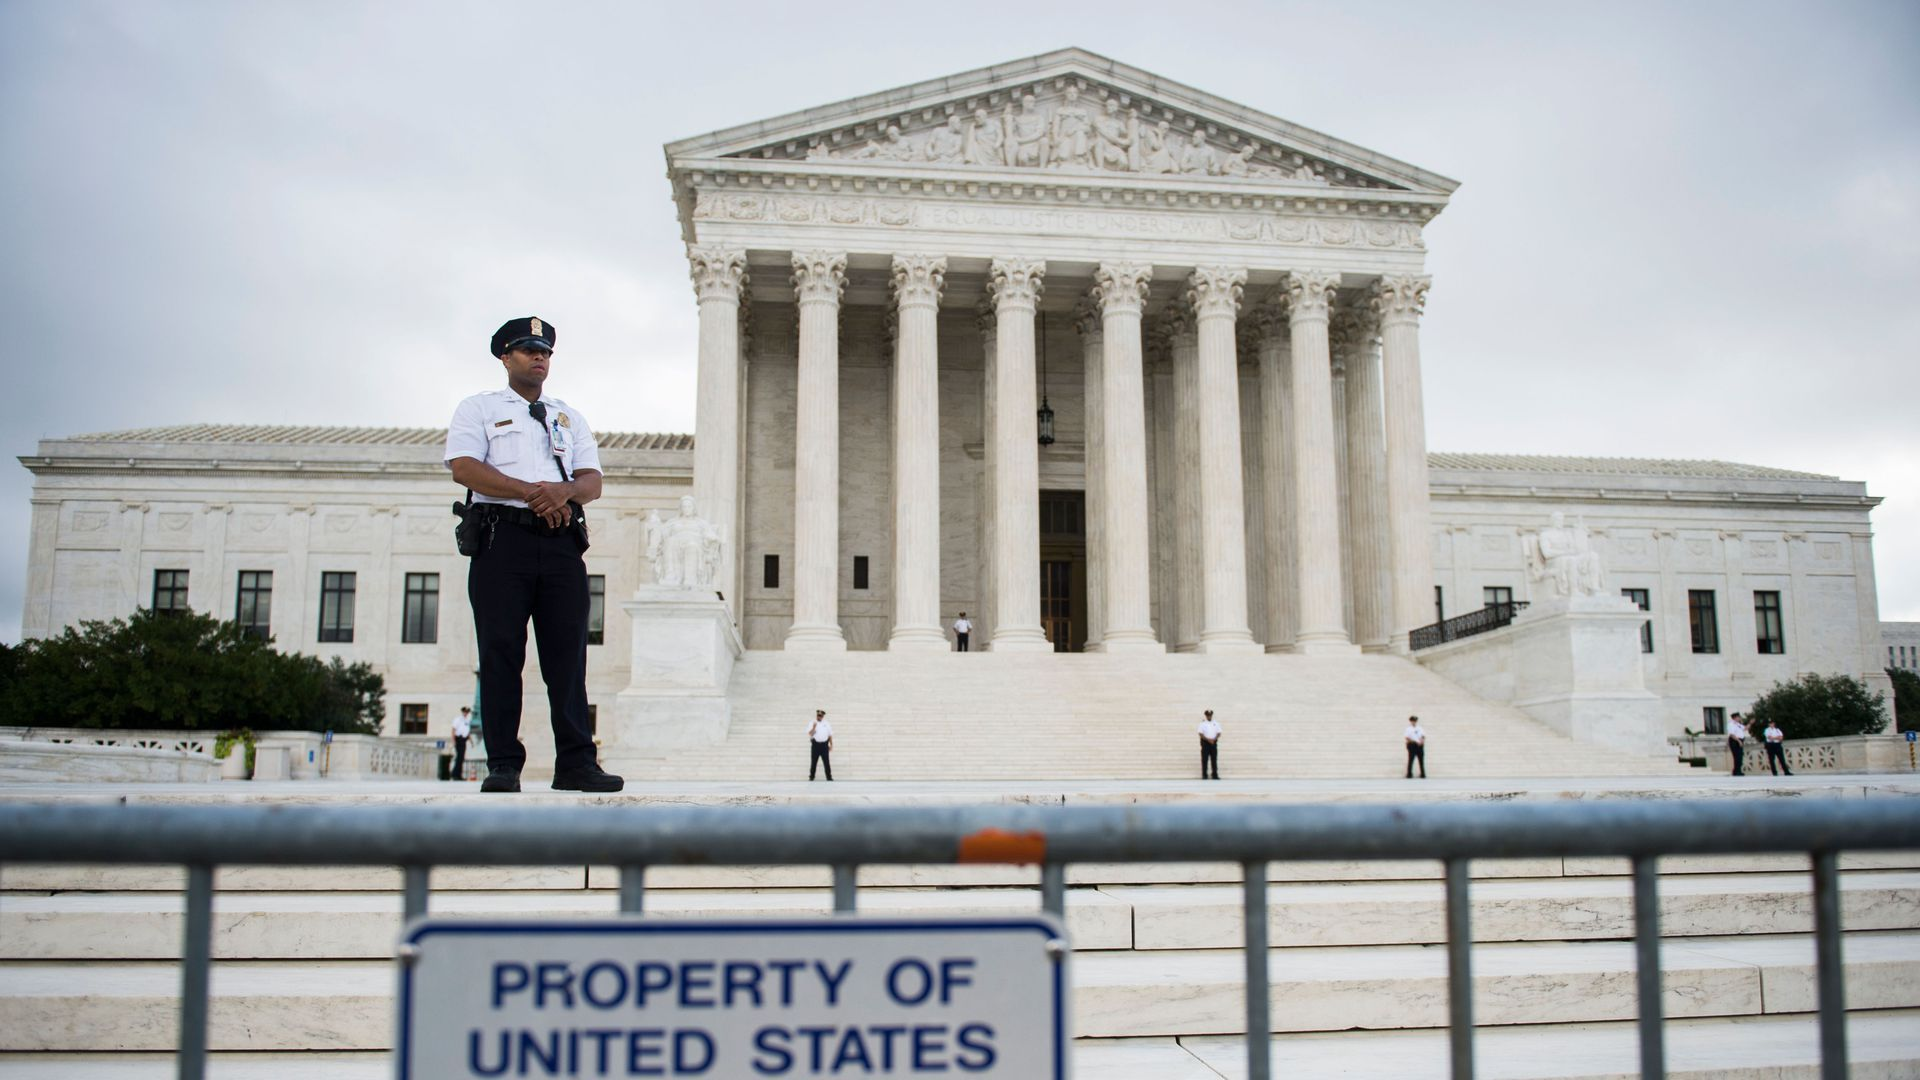 A security officer stands guard on the steps of the Supreme Court